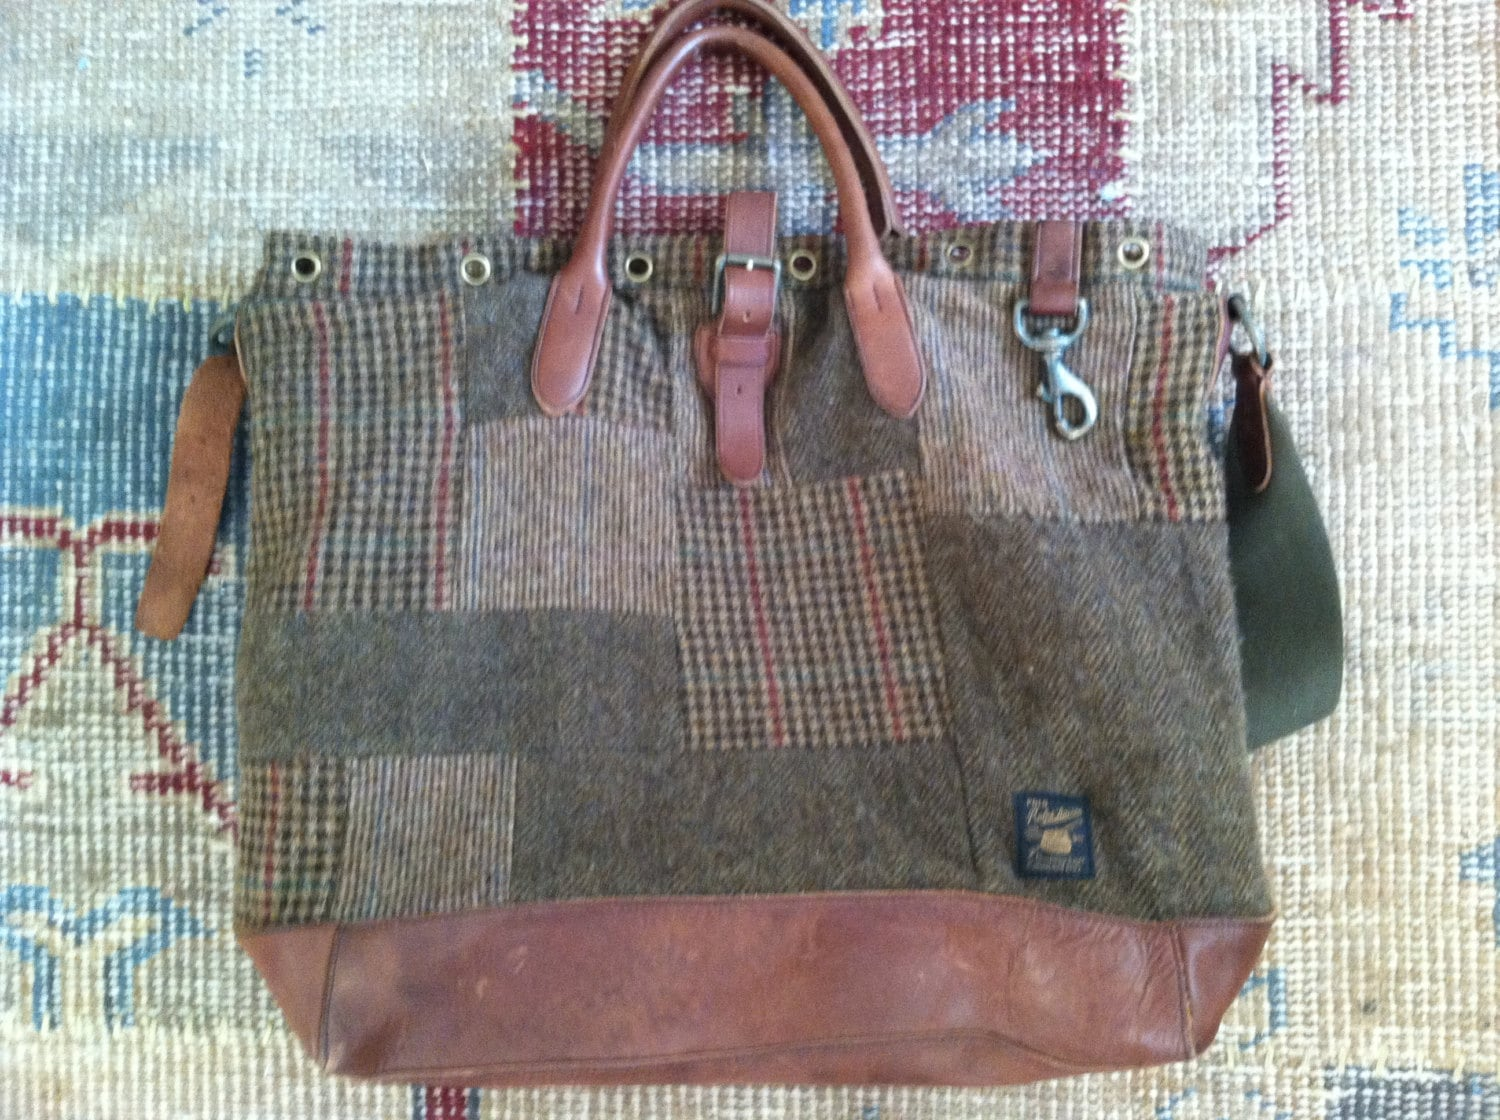 9c37013f90 RALPH LAUREN DUFFLE Tote Bag Wool Patchwork Patched Leather